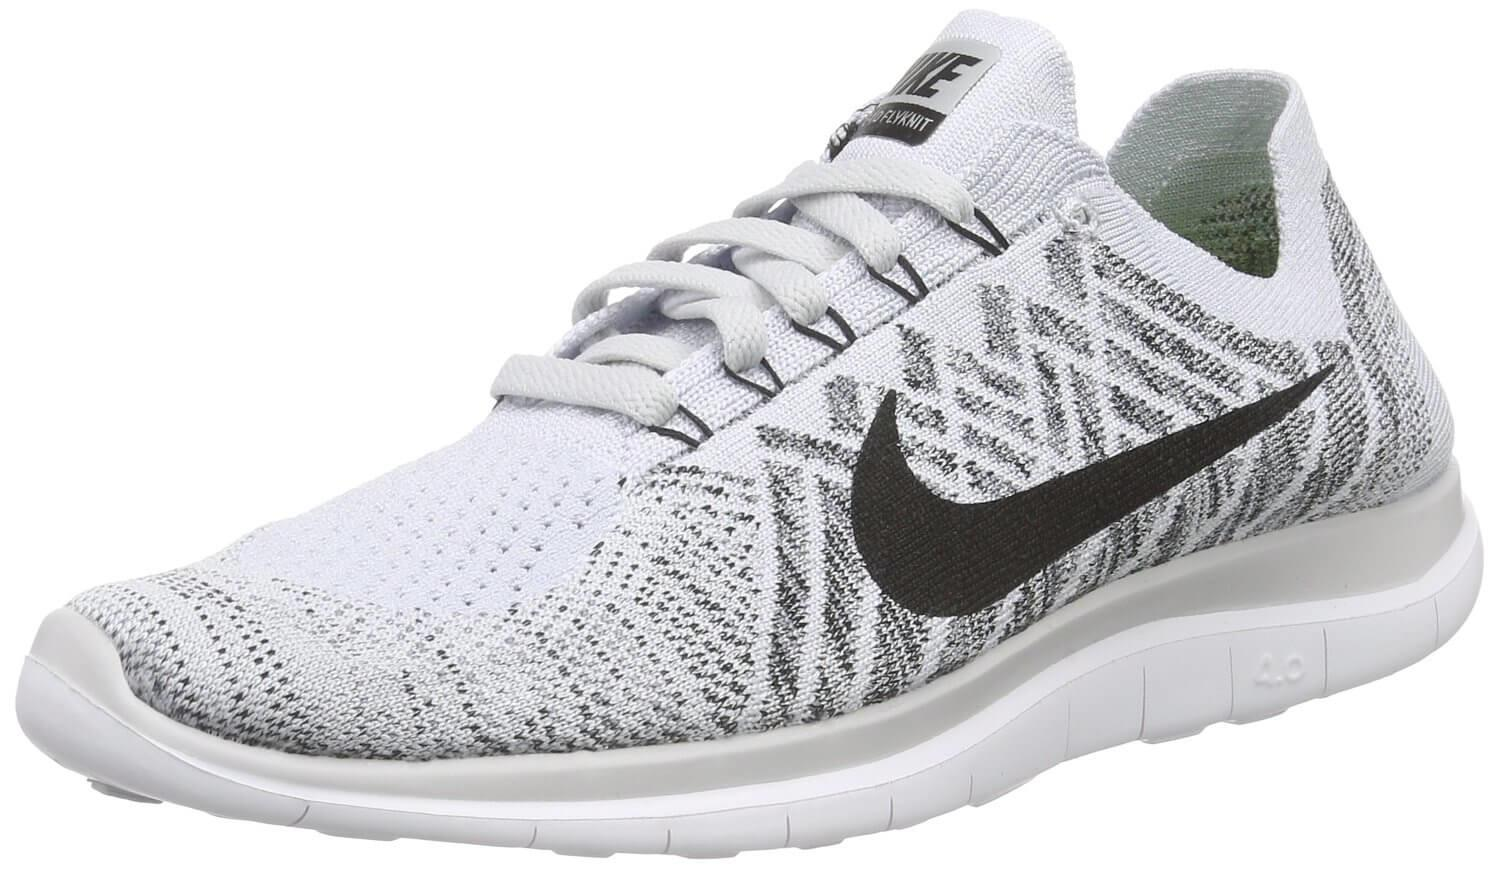 a5bde924cffba Nike Free Flyknit 4.0 Review - Buy or Not in May 2019